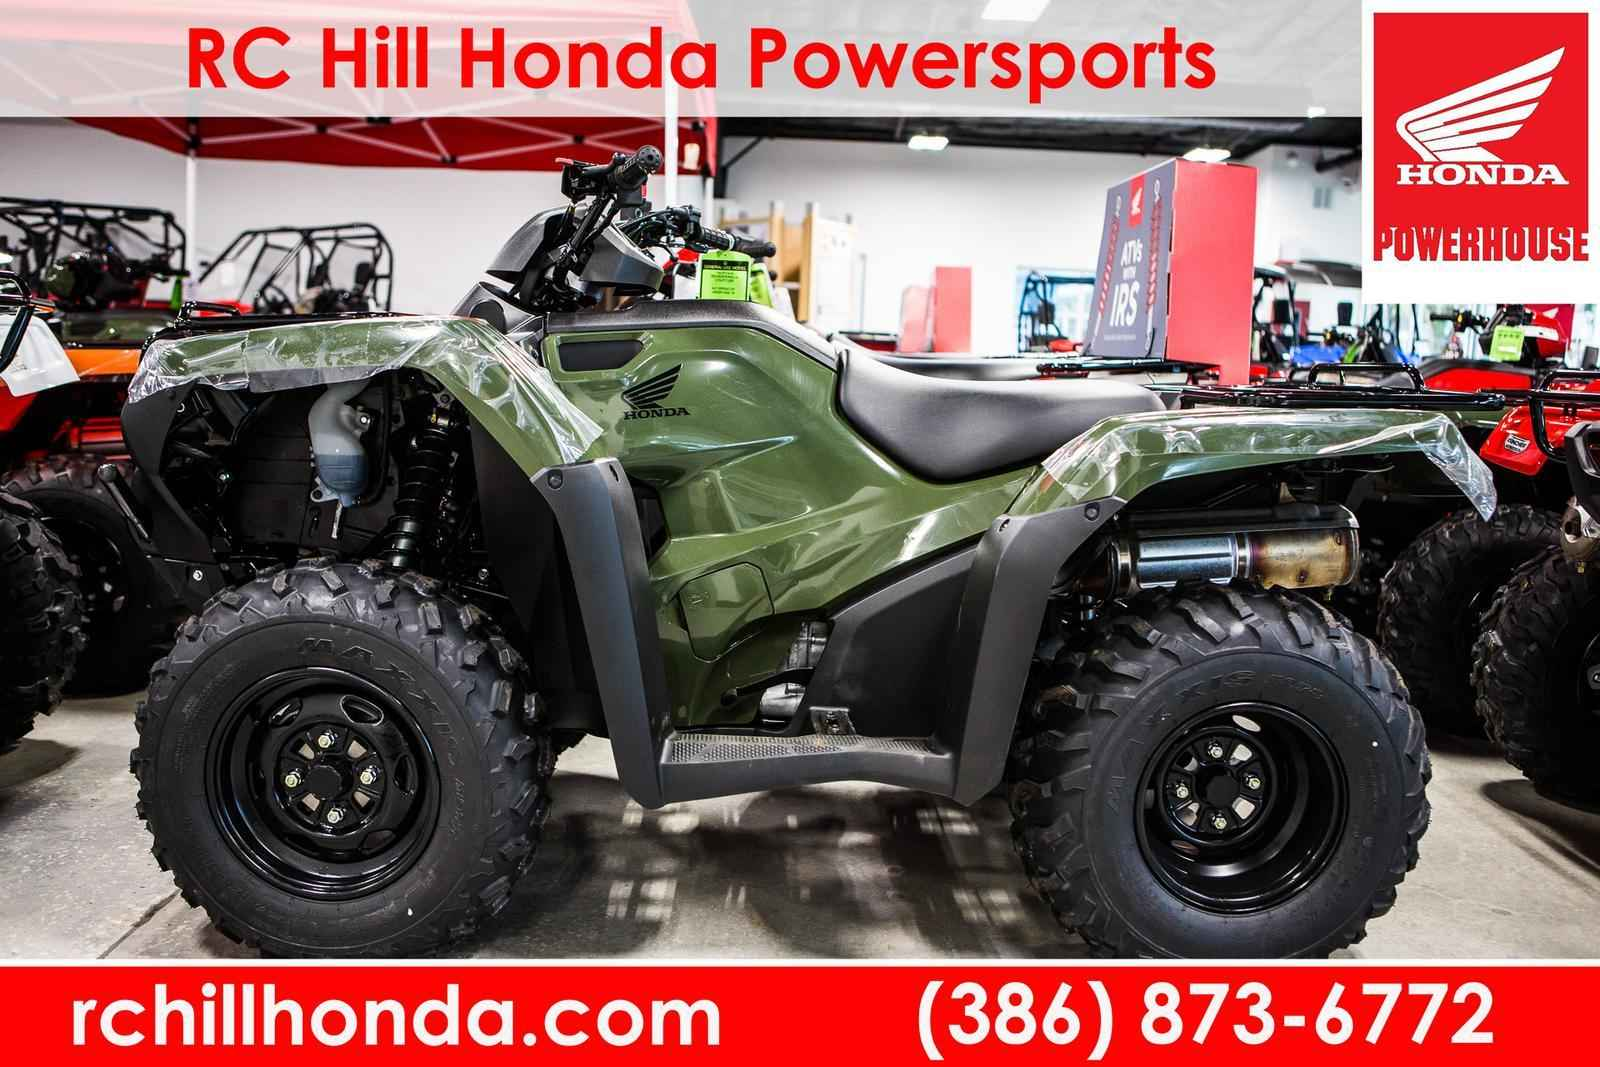 New 2017 honda fourtrax rancher trx420tm1 atvs for sale in for Honda 420 rancher for sale